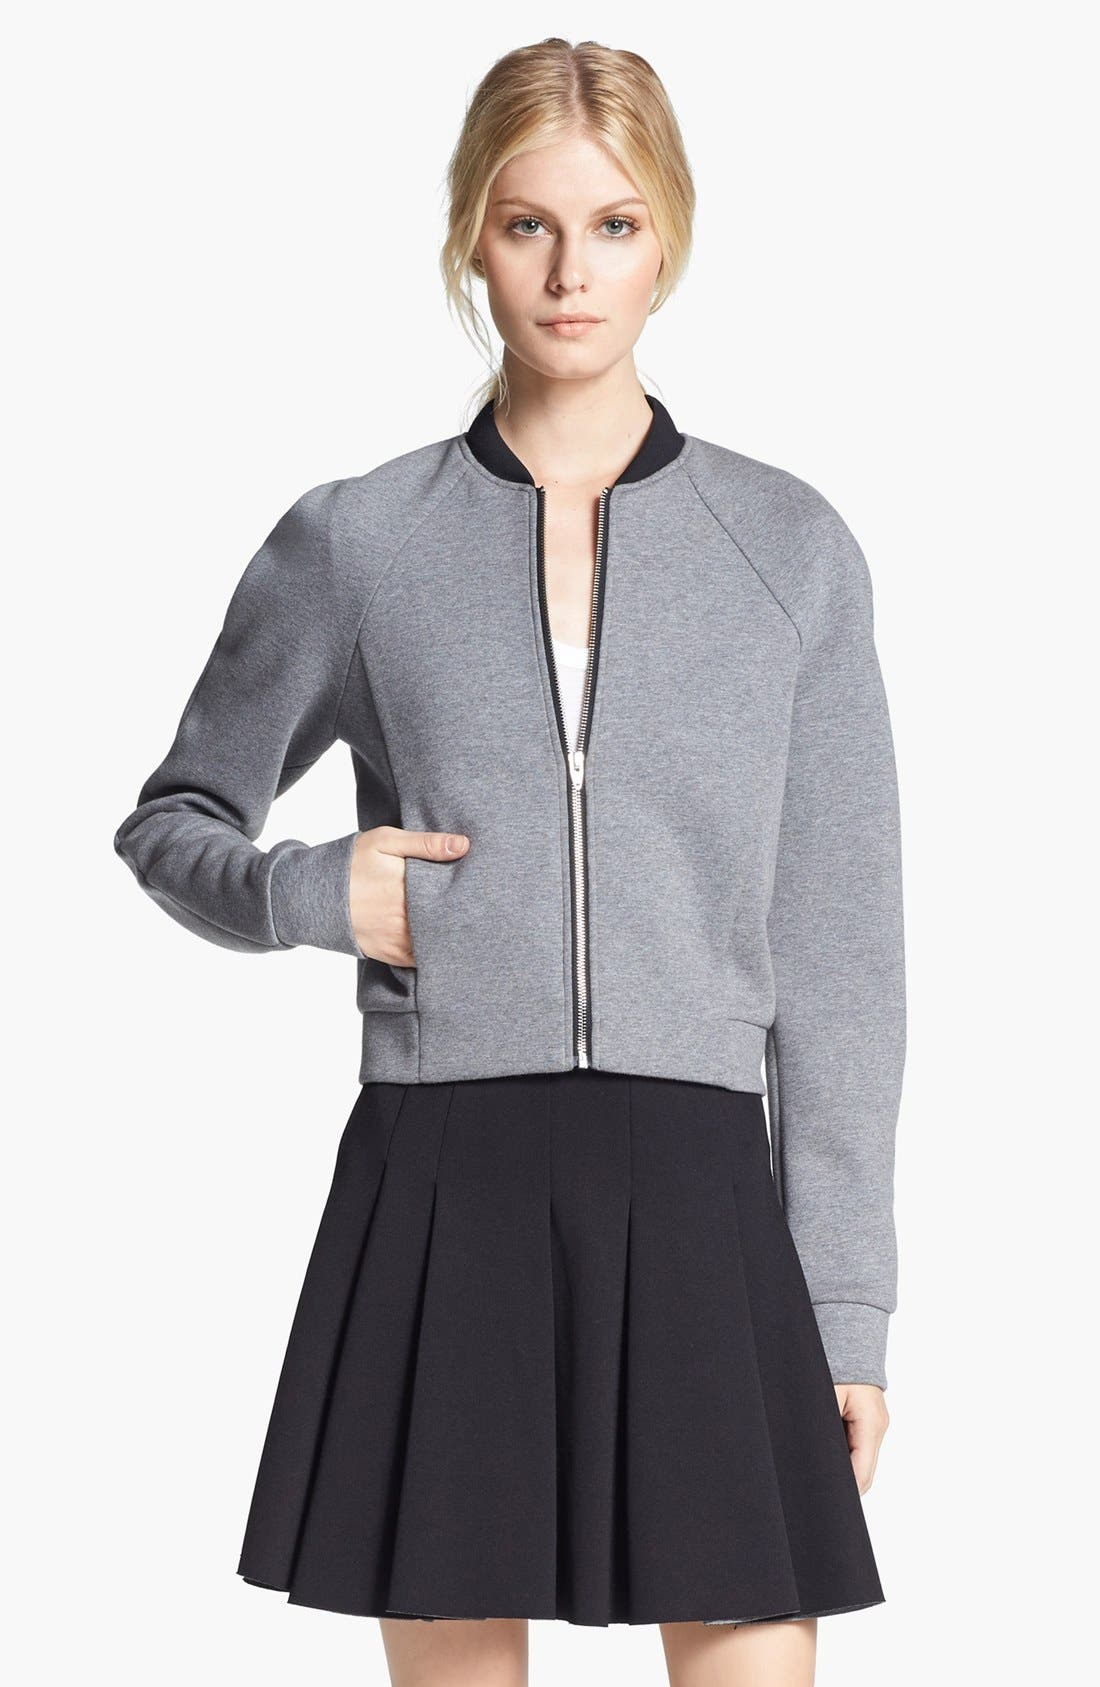 Alternate Image 1 Selected - T by Alexander Wang Bonded Jersey & Neoprene Bomber Jacket